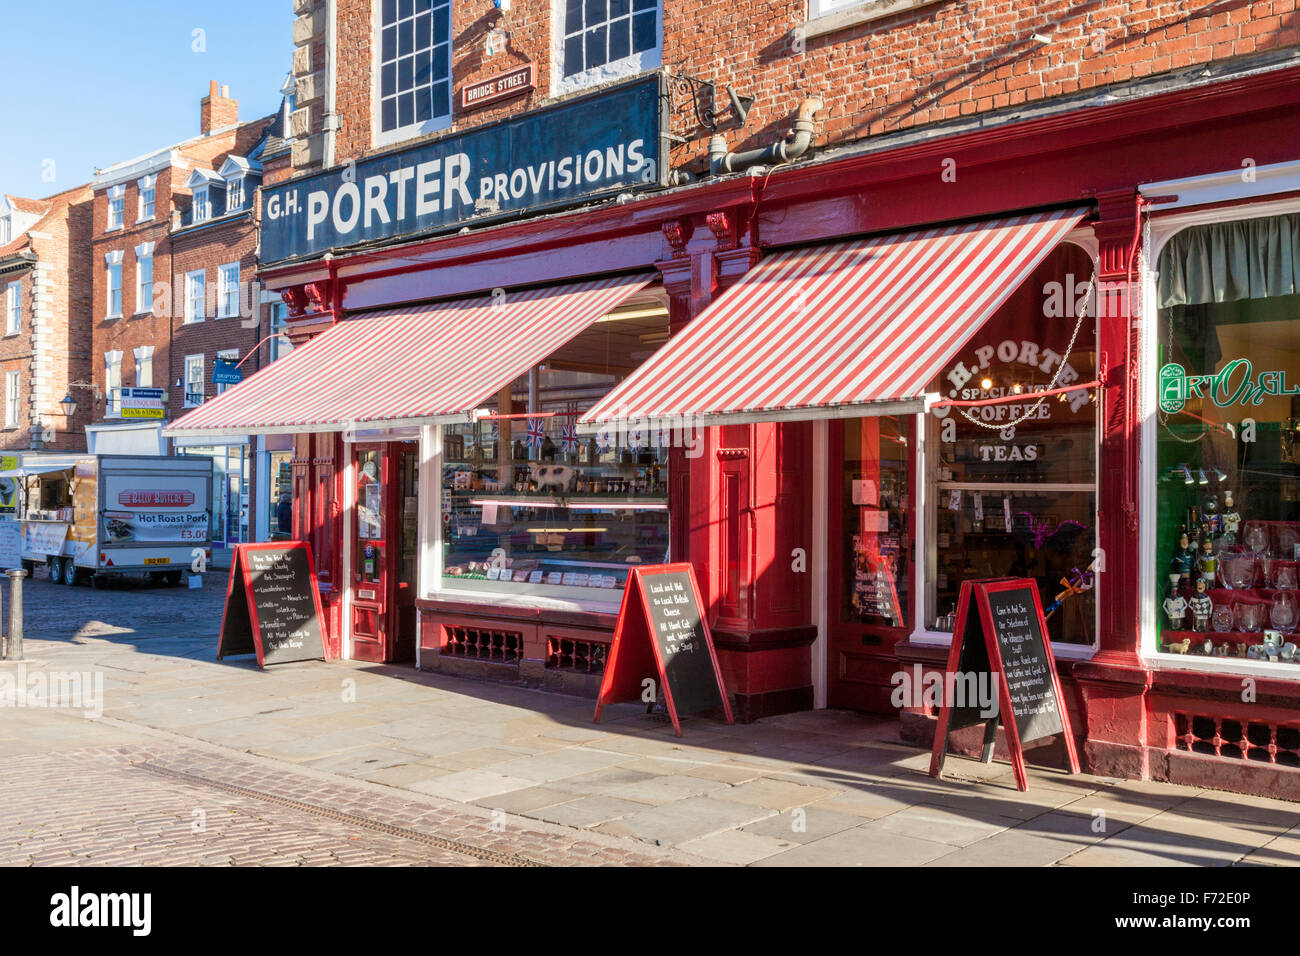 Traditional butcher shop and café with awnings. Newark on Trent, Nottinghamshire, England, UK - Stock Image